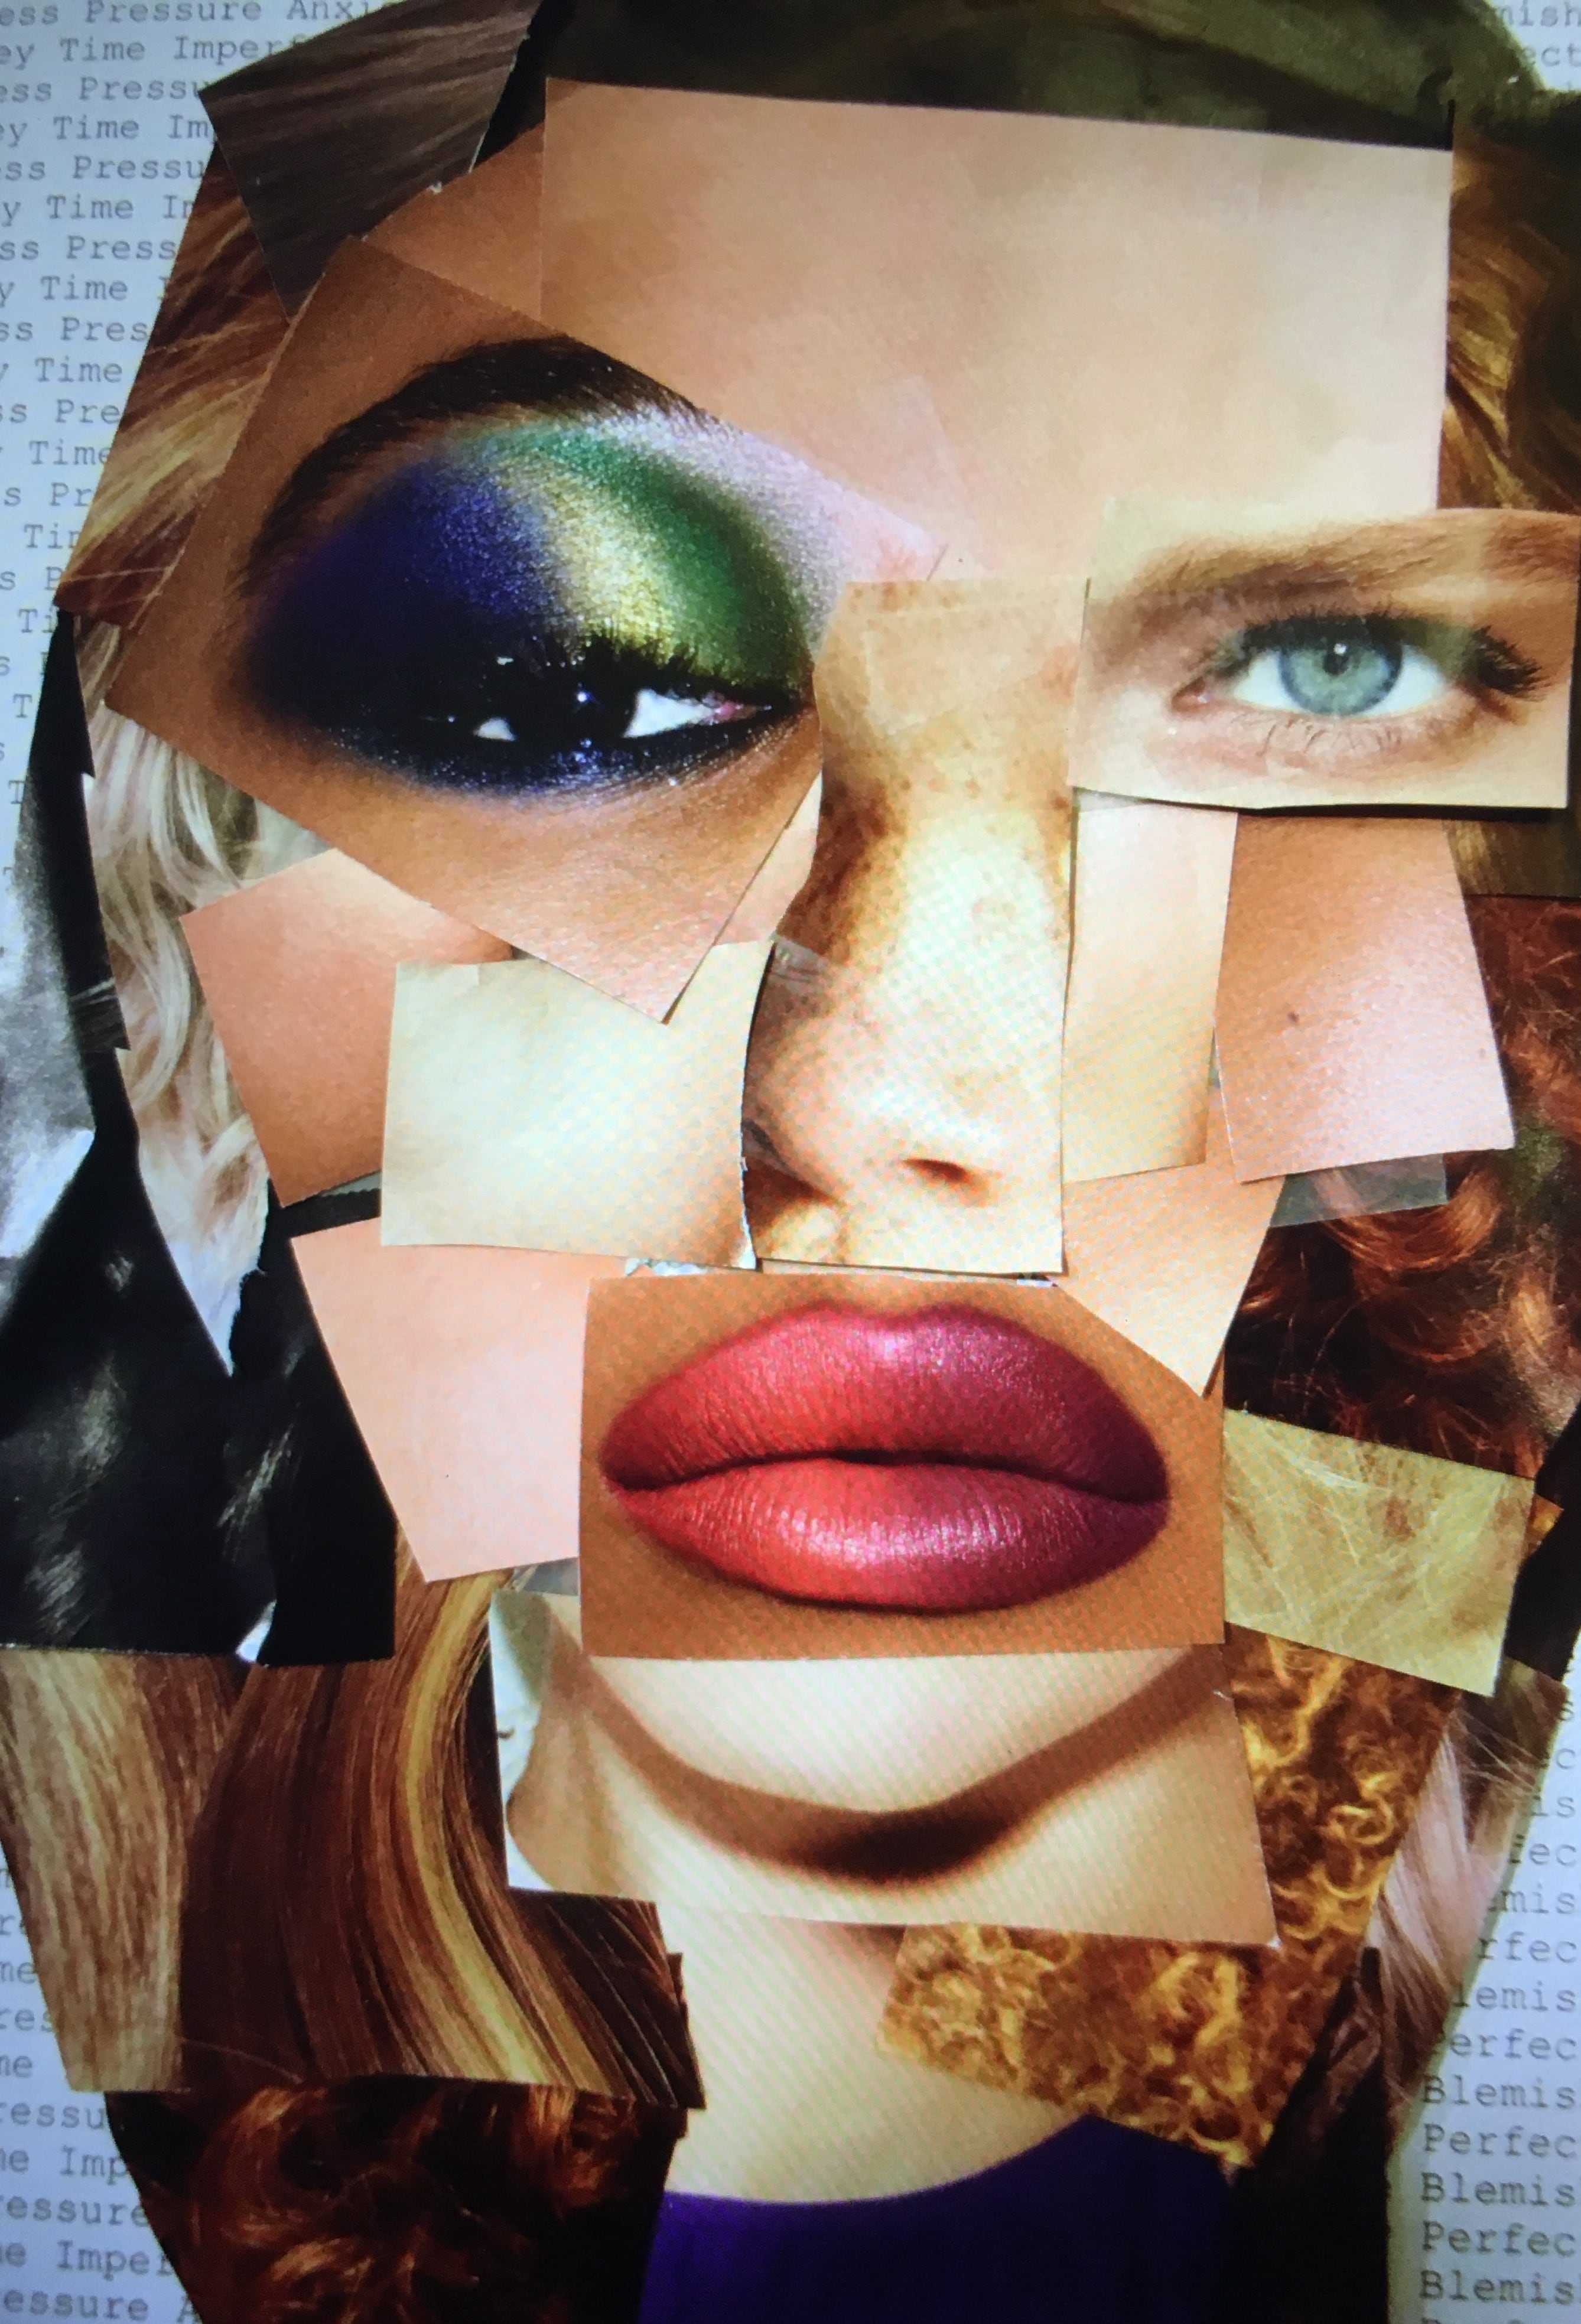 Although makeup can serve as a confidence booster for some, for others it suffices as a mask to hide behind. Society has created distorted images and unrealistic expectations of who we should be and what we should look like.